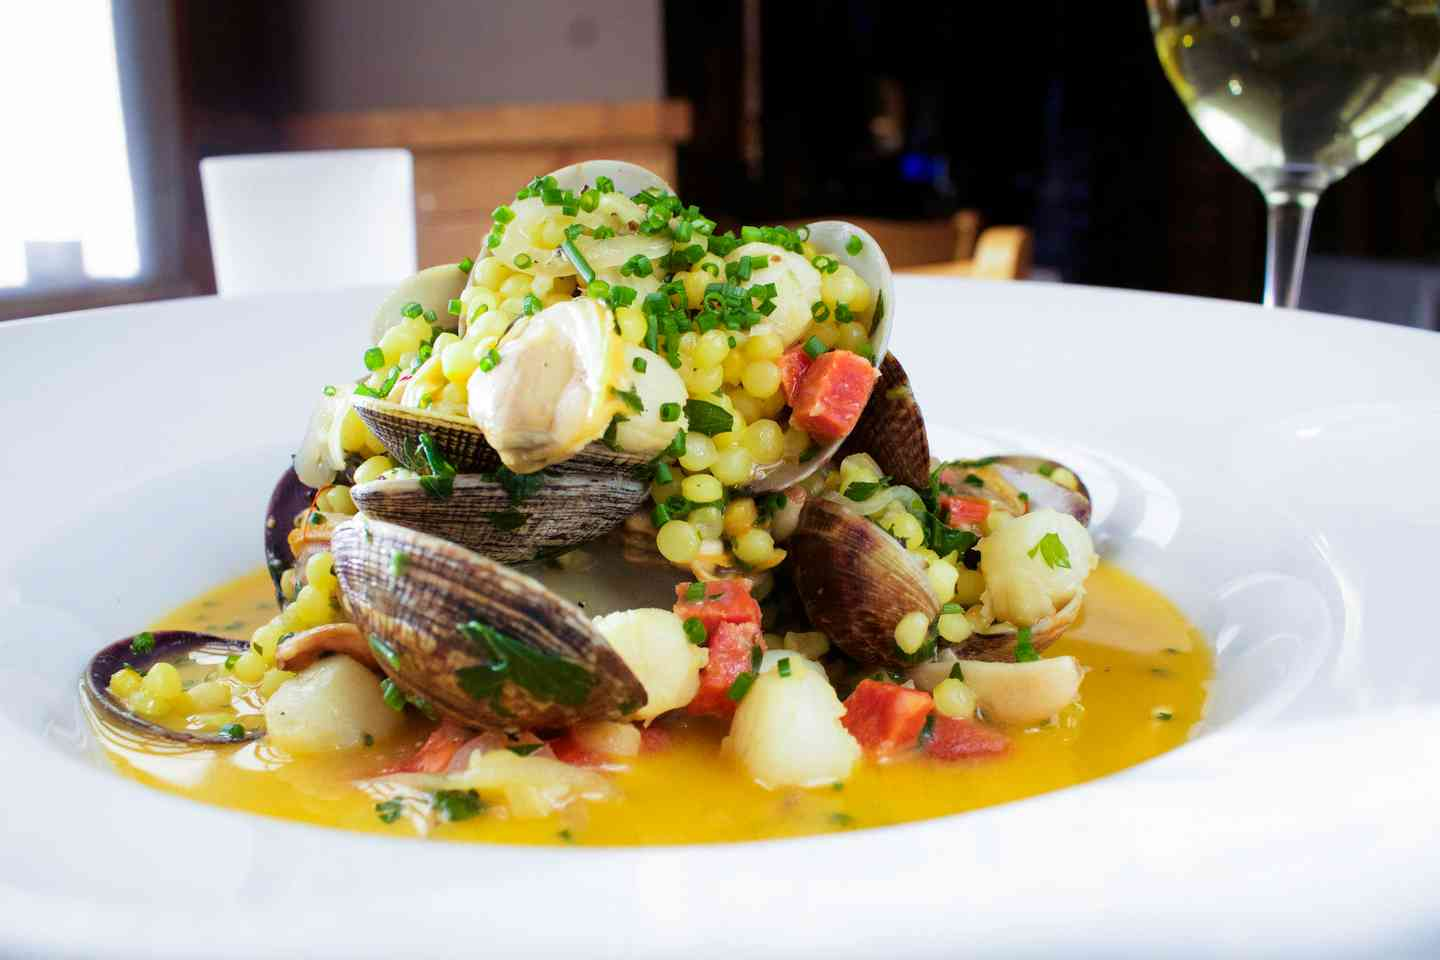 Close up view of a seasonal seafood and corn dish